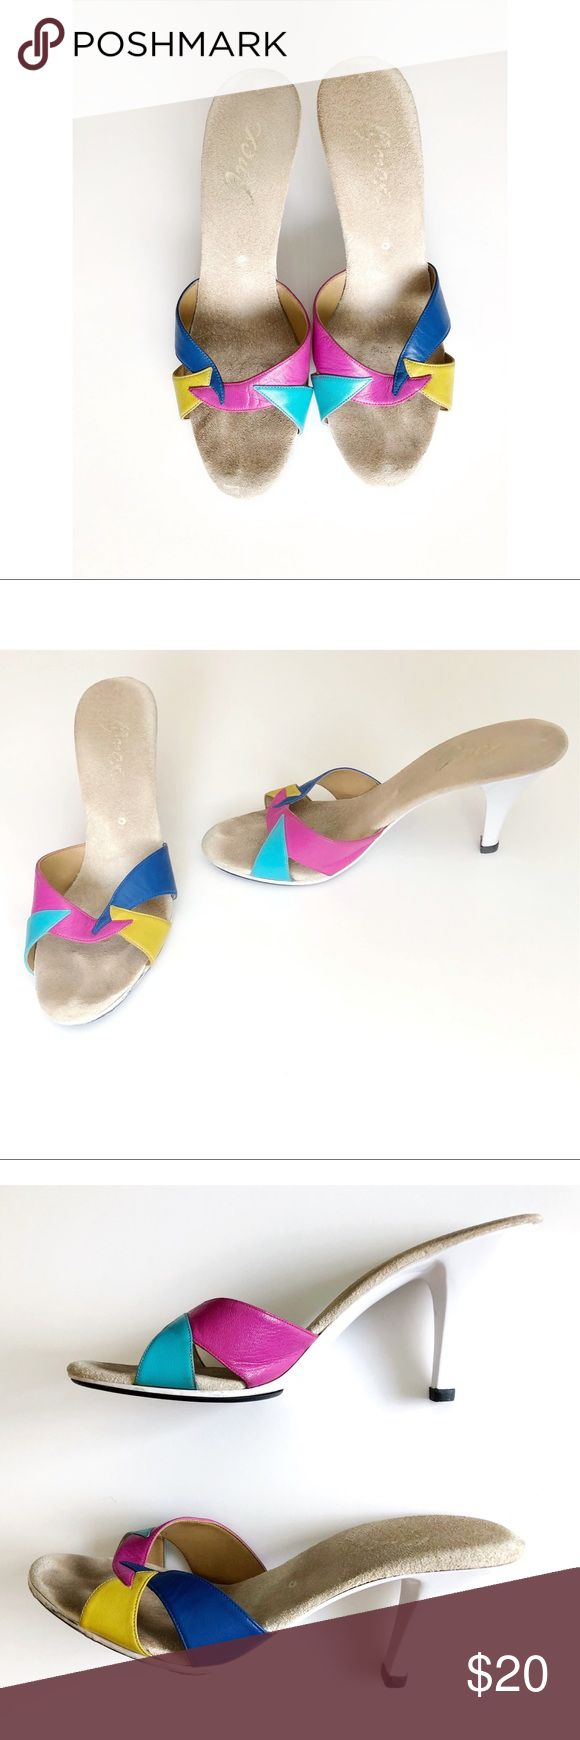 Vintage Onex Multicolored Leather and Suede Heels Fabulous retro tropical style Onex Heels. The leather is pink, teal, Royal Blue and Yellow with a Suede insole. The base of the heel is a white and black plastic. Shoe is in great vintage condition with light wear and a small crack towards the bottom of the heel. See pictures. Size and Insole measurements coming tonight. Please contact me with any questions. Onex Shoes Heels